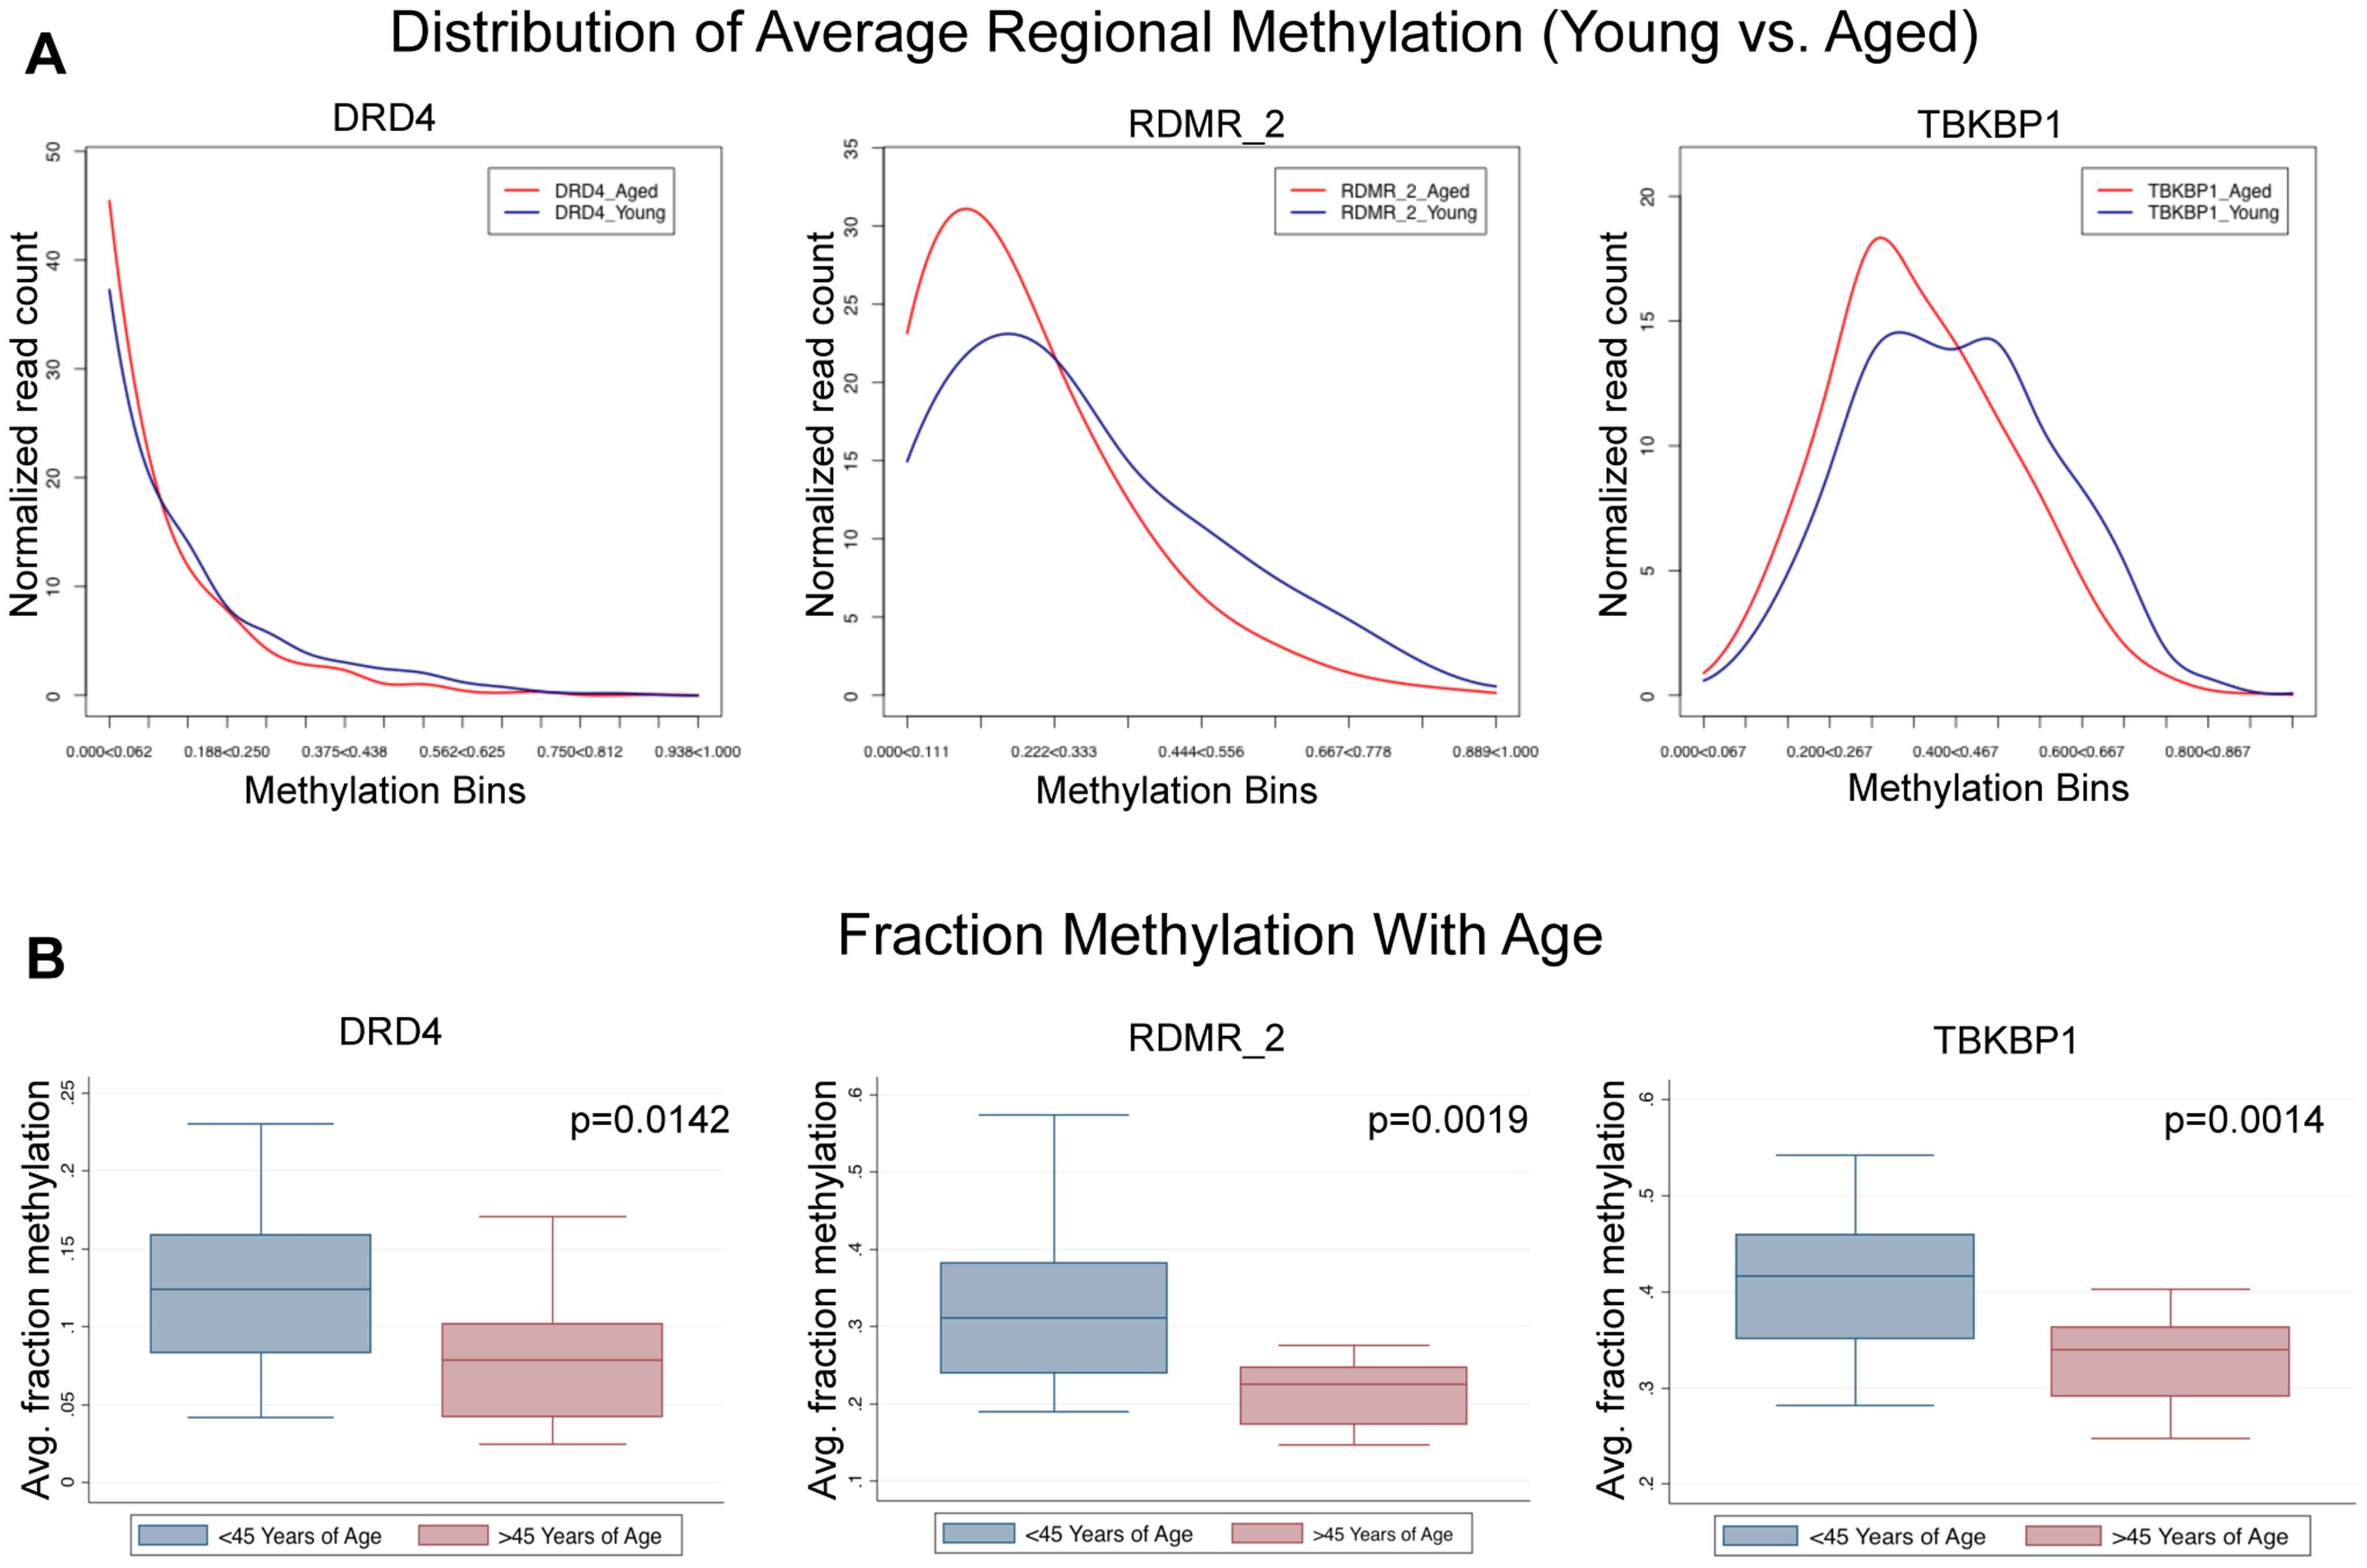 Single molecule analysis reveled 3 distinct alterations that occur with age.